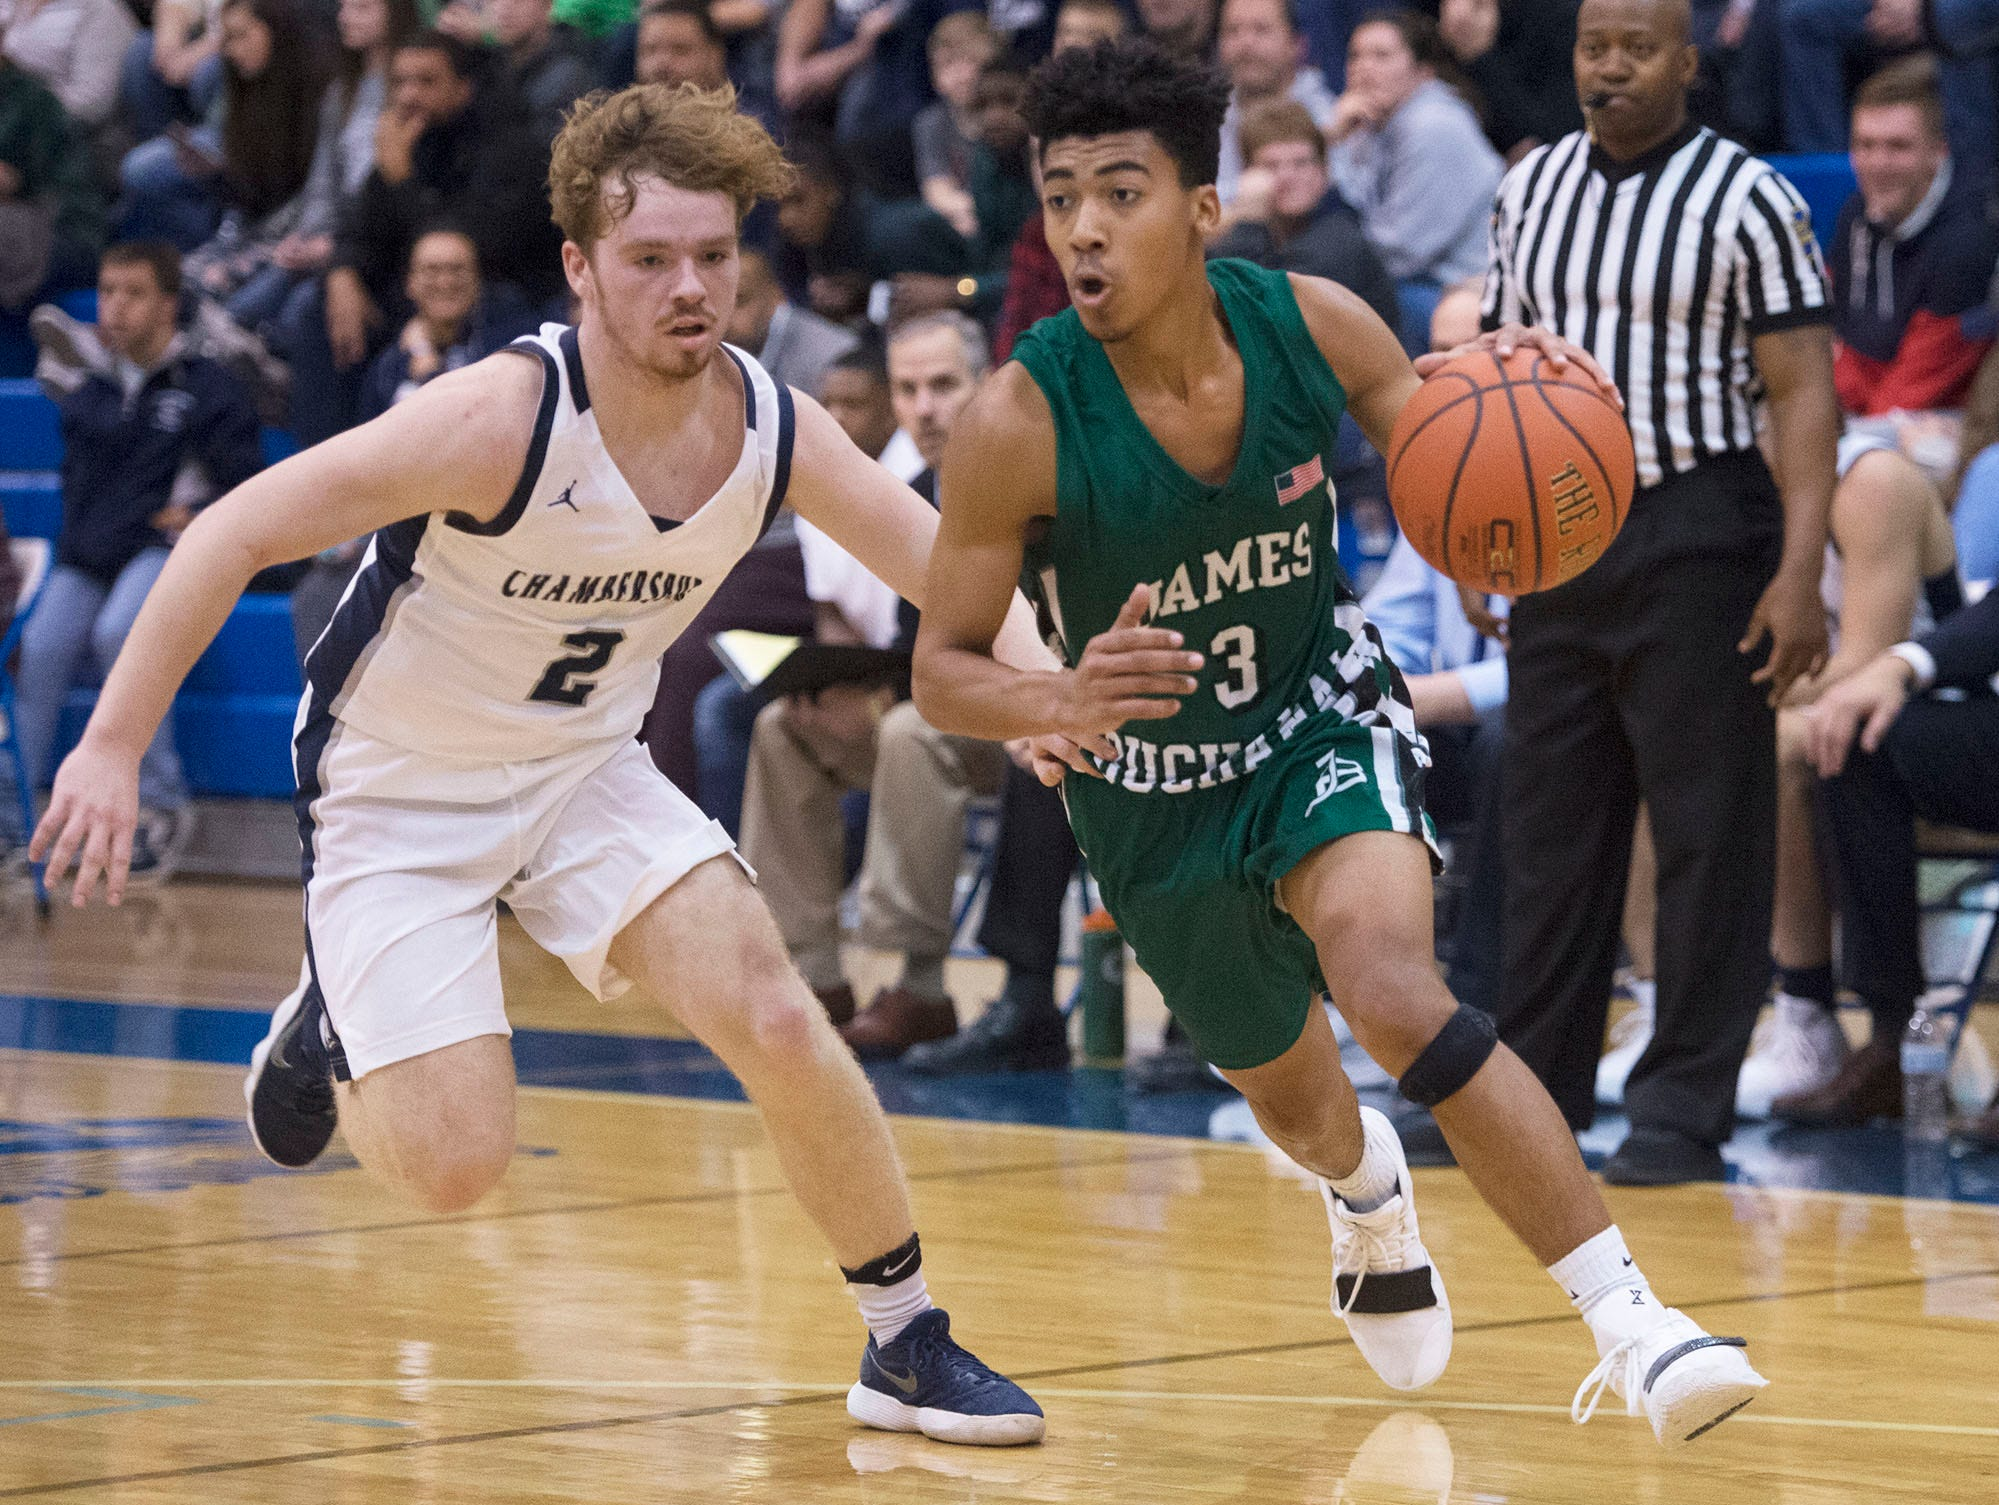 Chambersburg's Tucker Perry guards James Buchanan's Syrus Maldonado. Chambersburg played James Buchanan boys during the Franklin County Tip-Off Tournament, Friday, Dec. 7, 2018.